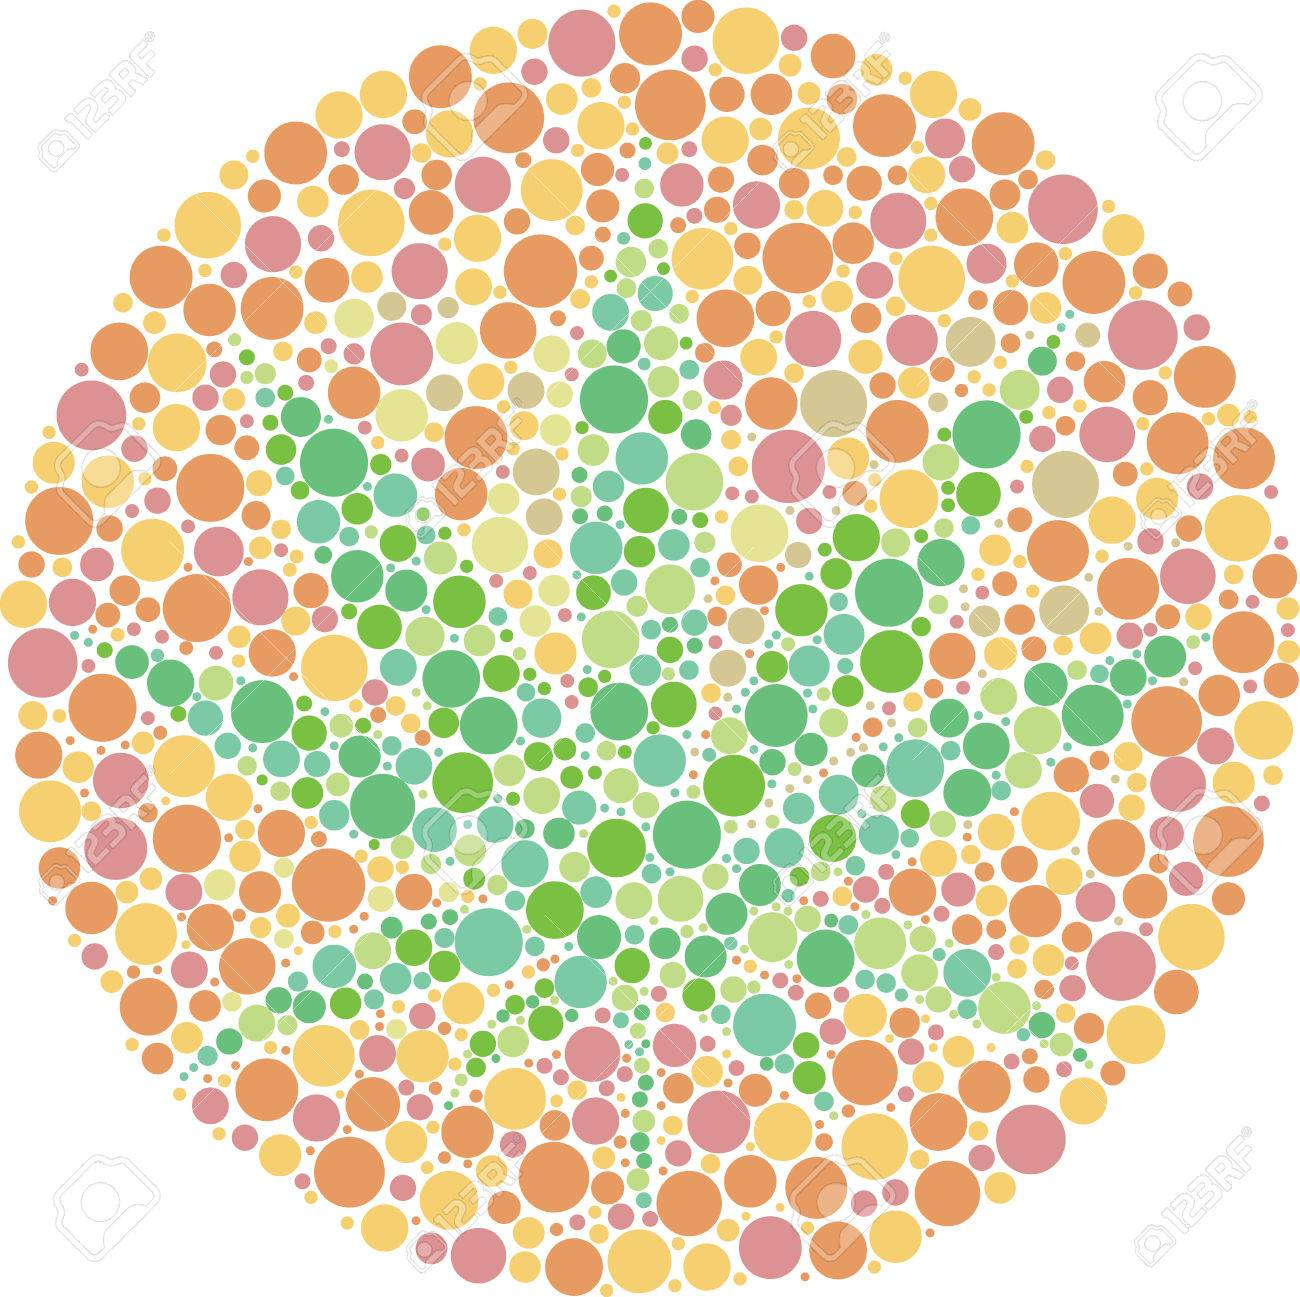 Ishihara Color Test Plate With The Shape Of Cannabis Leaf. Vector ...